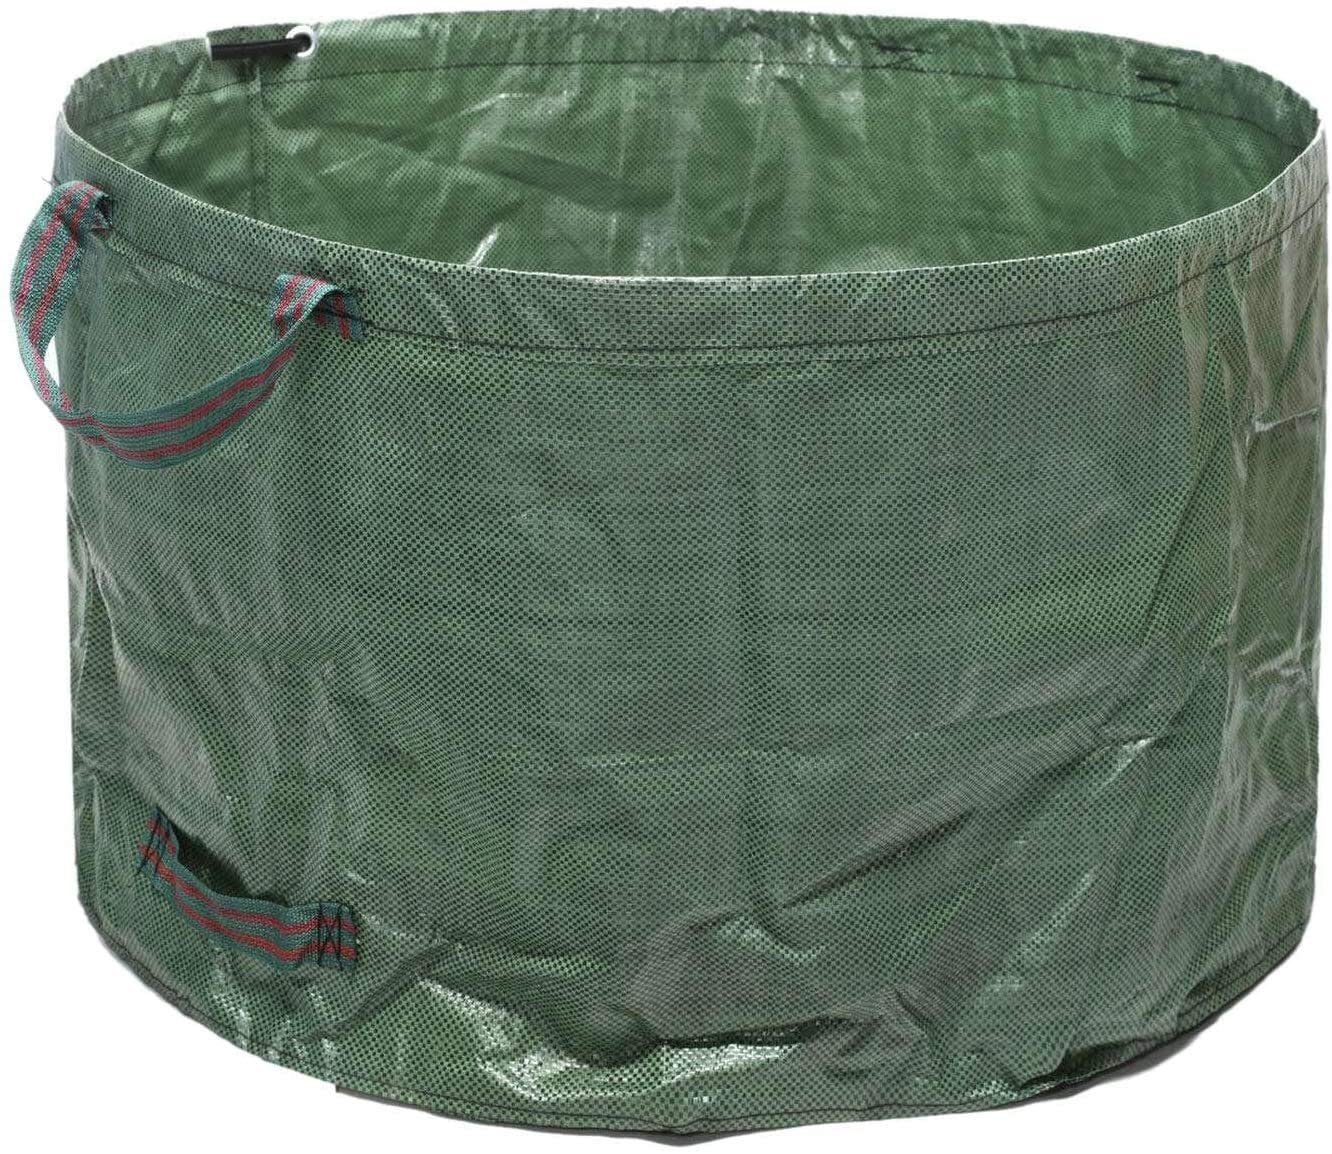 Zxcv Bulk Bags Garden Waste Bags Reusable and Collapsible Lawn Leaf Container 63 Gallons